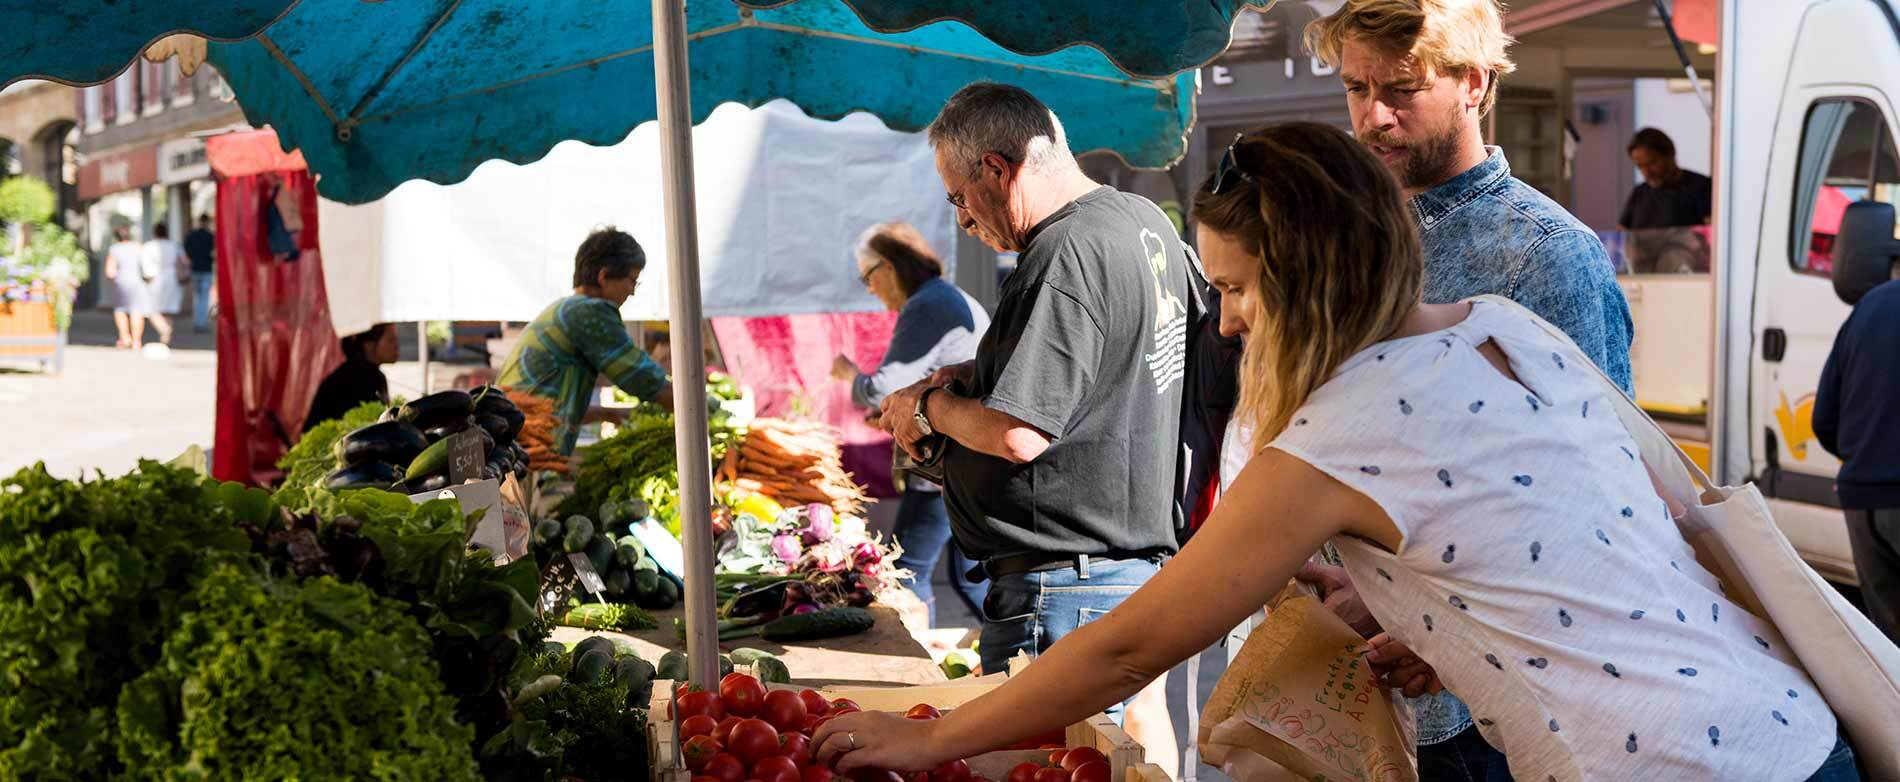 Les 5 raisons de manger local